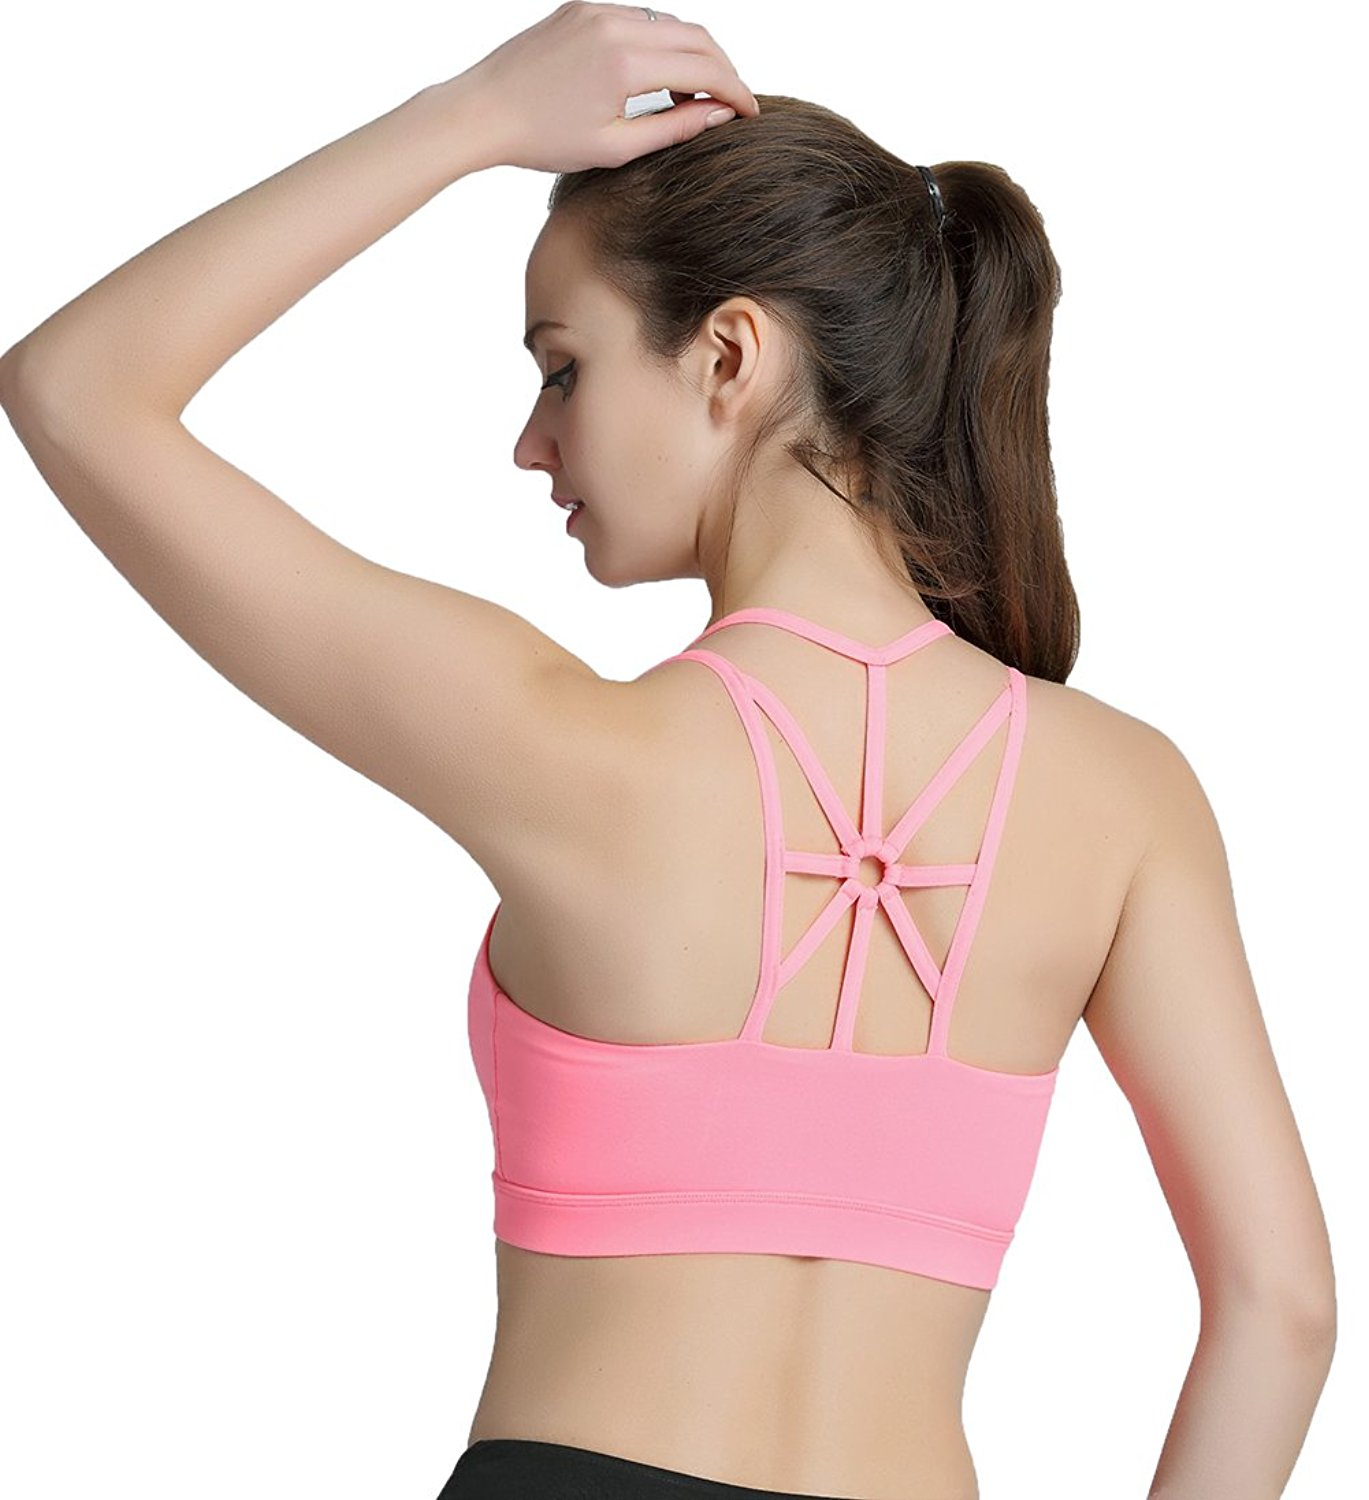 ac2dfaa0443 Get Quotations · Hioffer Womens Light Support Cross Back Wirefree Pad Yoga  Sports Bra Double Lined T-Back